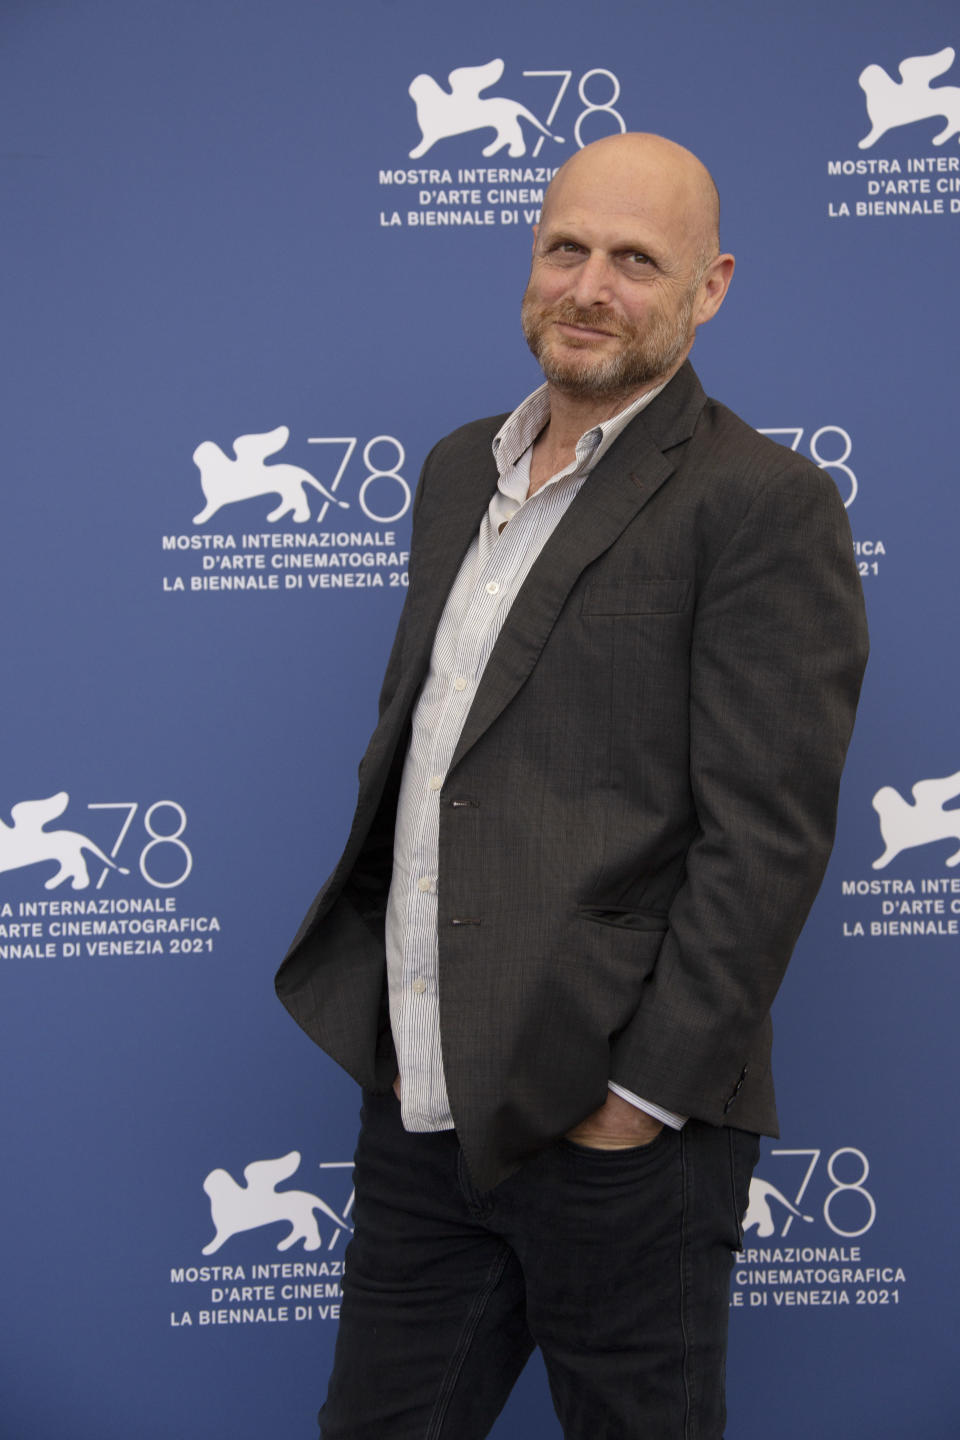 Hagai Levi poses for photographers at the photo call for the film 'Scenes of a Marriage' during the 78th edition of the Venice Film Festival in Venice, Italy, Saturday, Sep, 4, 2021. (Photo by Joel C Ryan/Invision/AP)